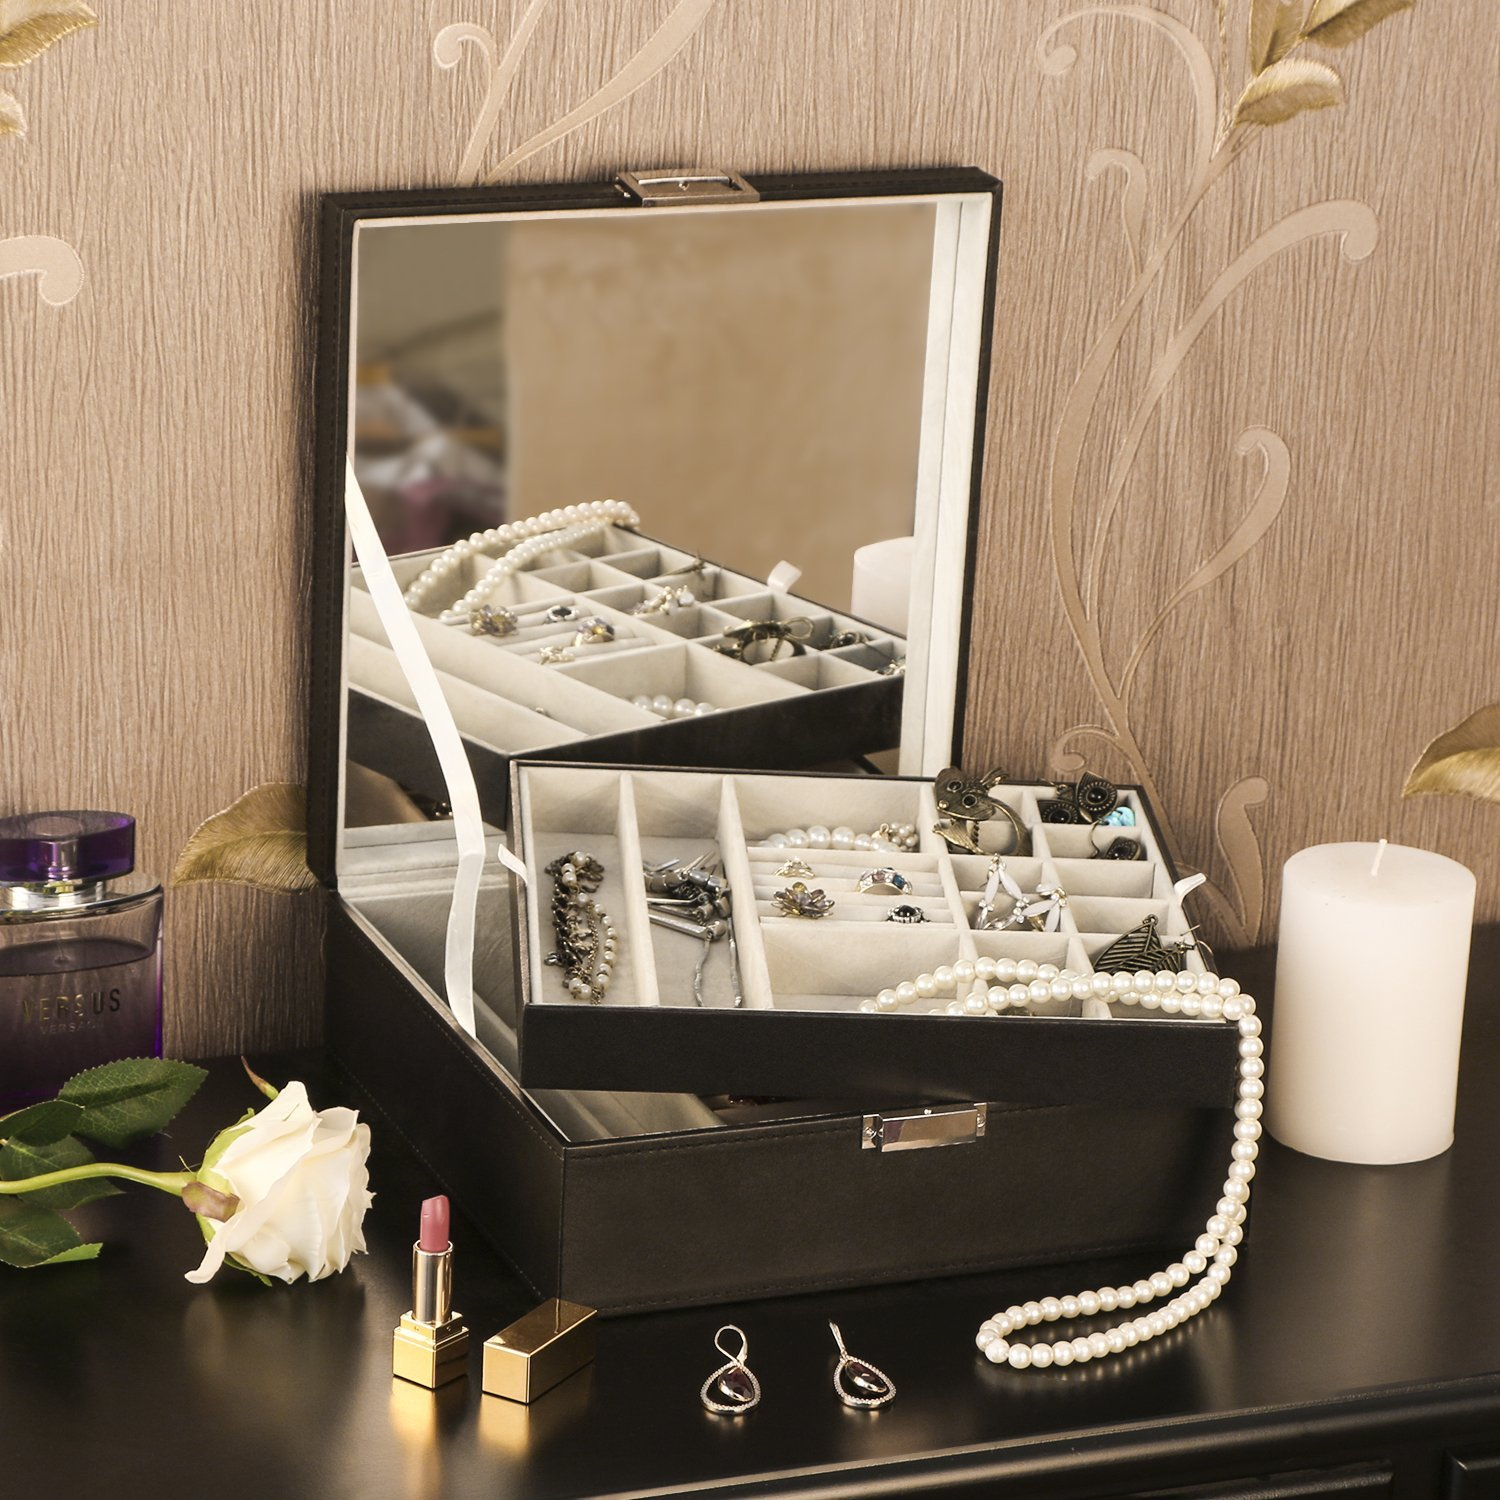 Jewelry Box Organizer 40 Section Display Tray Storage Case Drawer 2 Layers Large Mirror Girls Teens Women Holder for Earring Ring Necklace Bracelet PU Leather Black SSH01B BEWISHOME